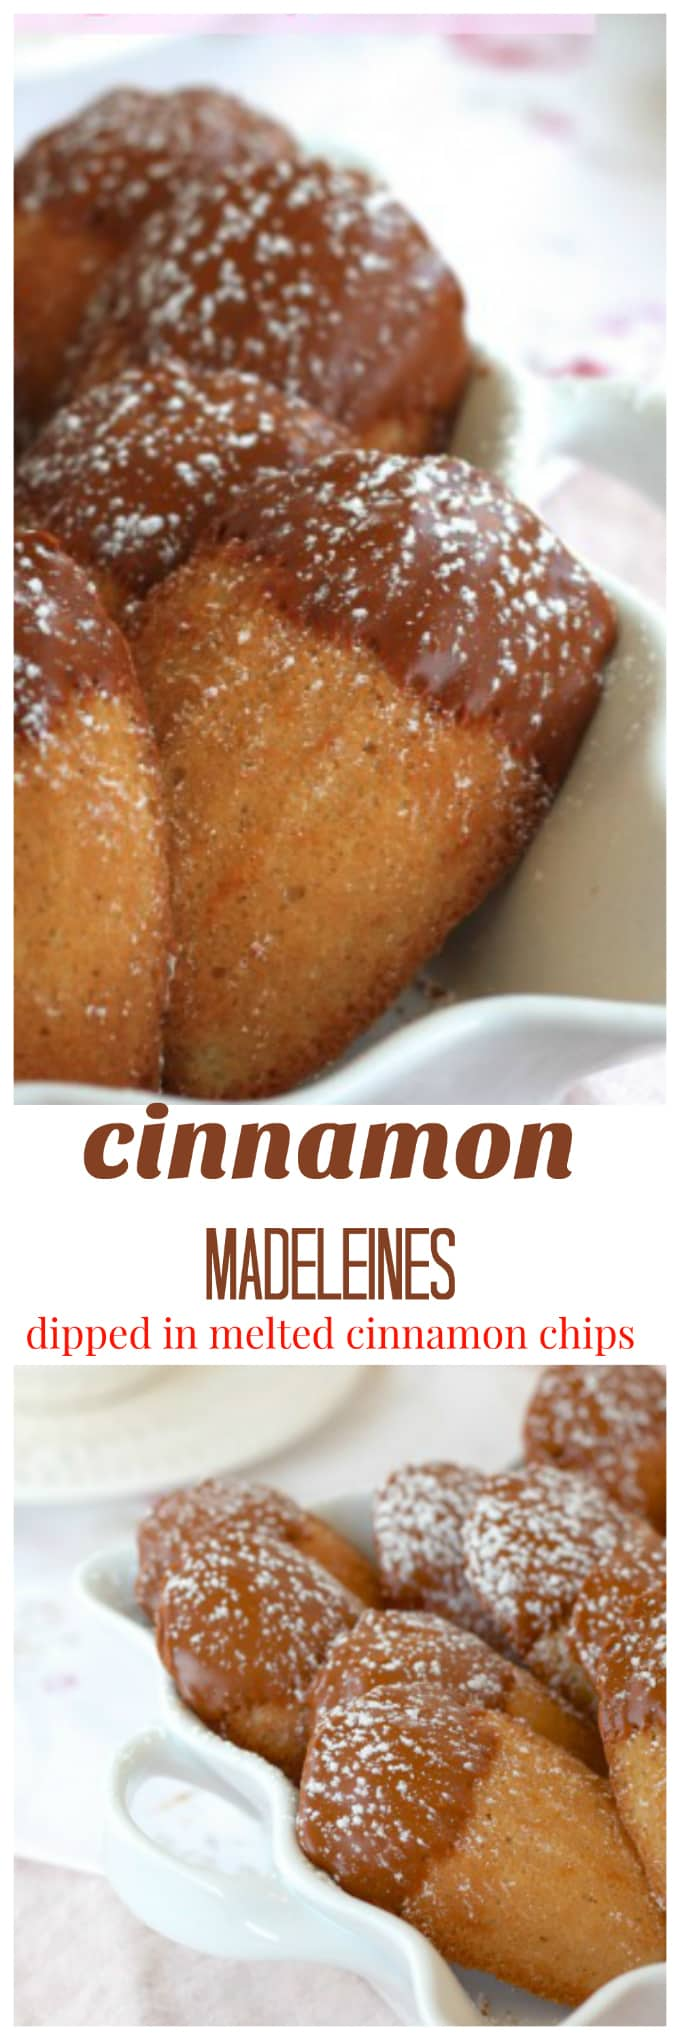 cinnamon madeleines dipped in melted cinnamon chips @createdbydiane